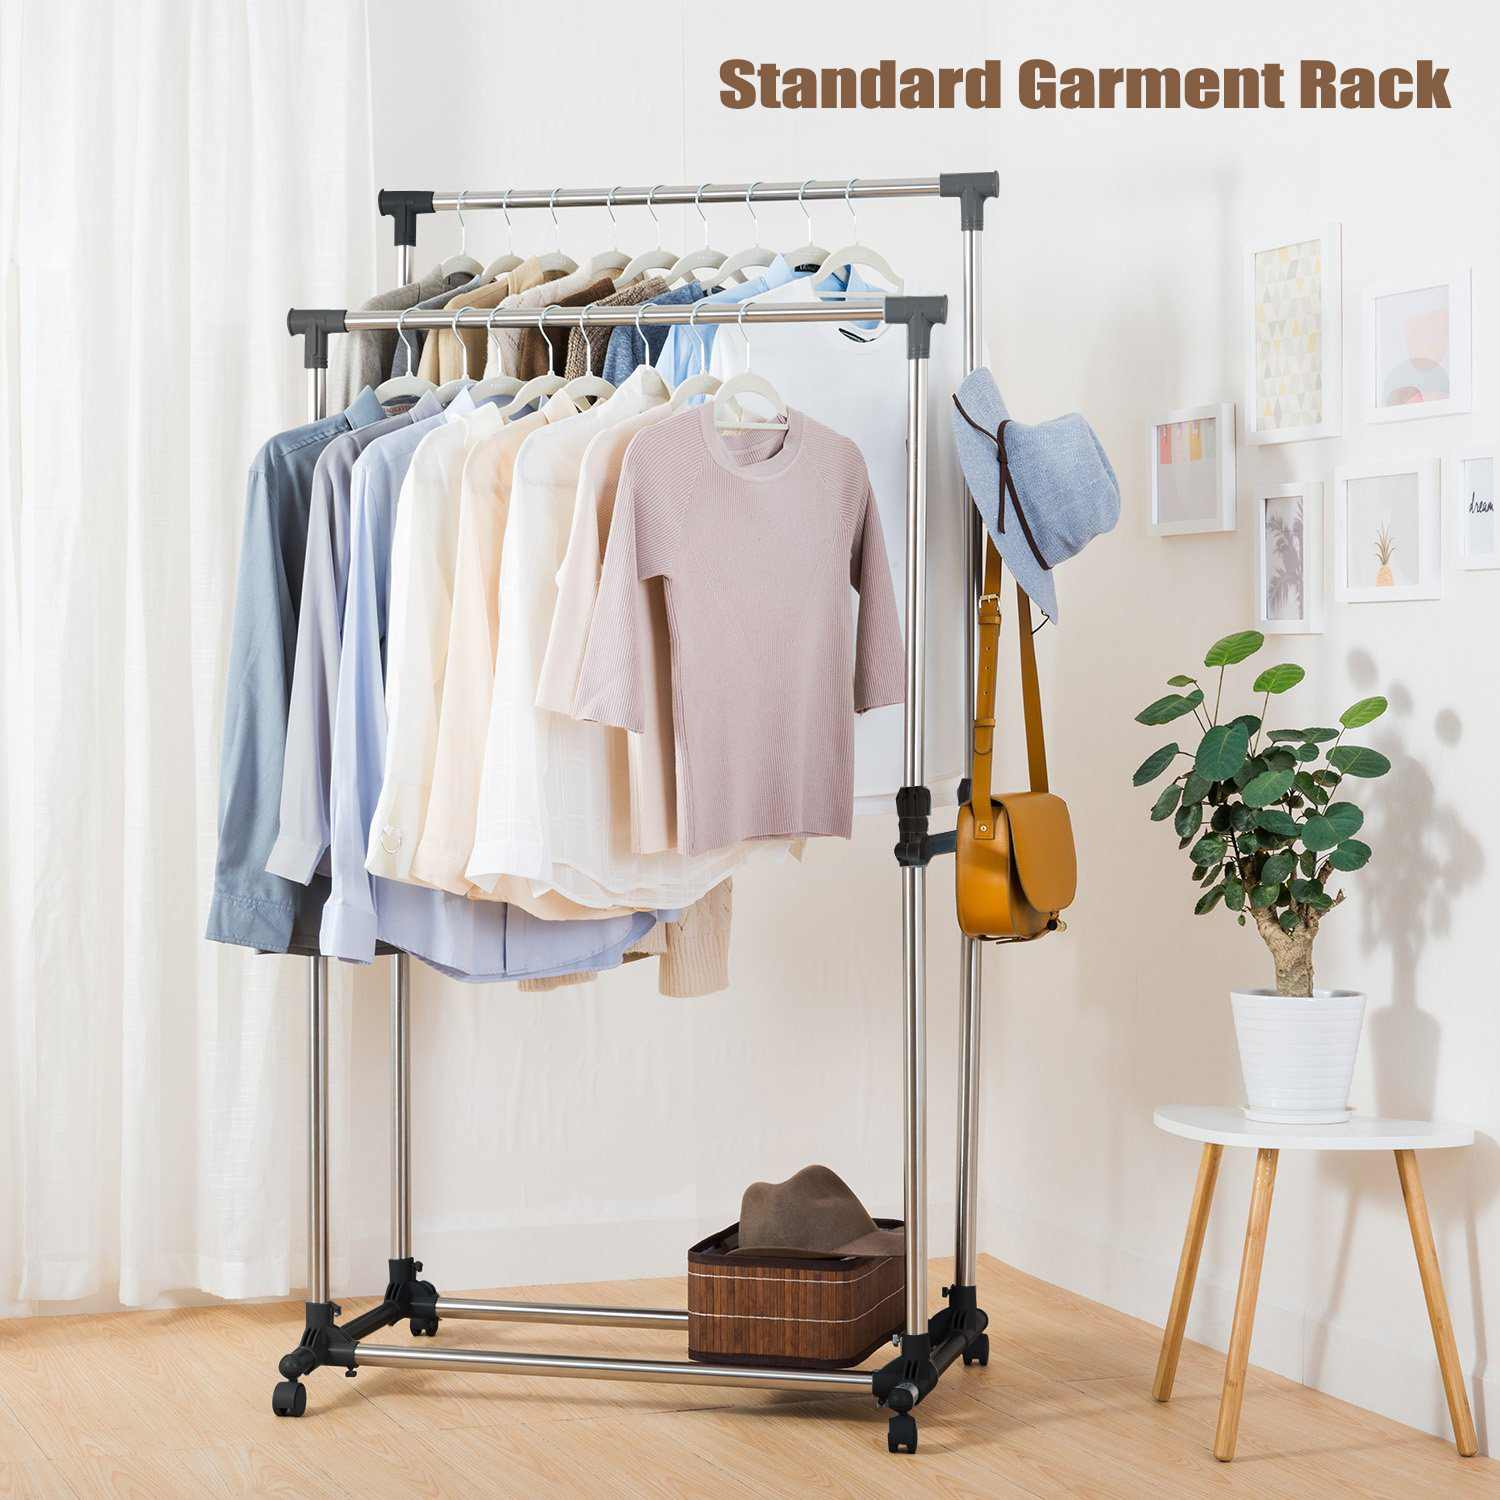 Stainless Steel Adjustable Double Single Clothes Coat Garment Dryer Rack Rail Hanging Hanger 61 155cmStainless Steel Adjustable Double Single Clothes Coat Garment Dryer Rack Rail Hanging Hanger 61 155cm